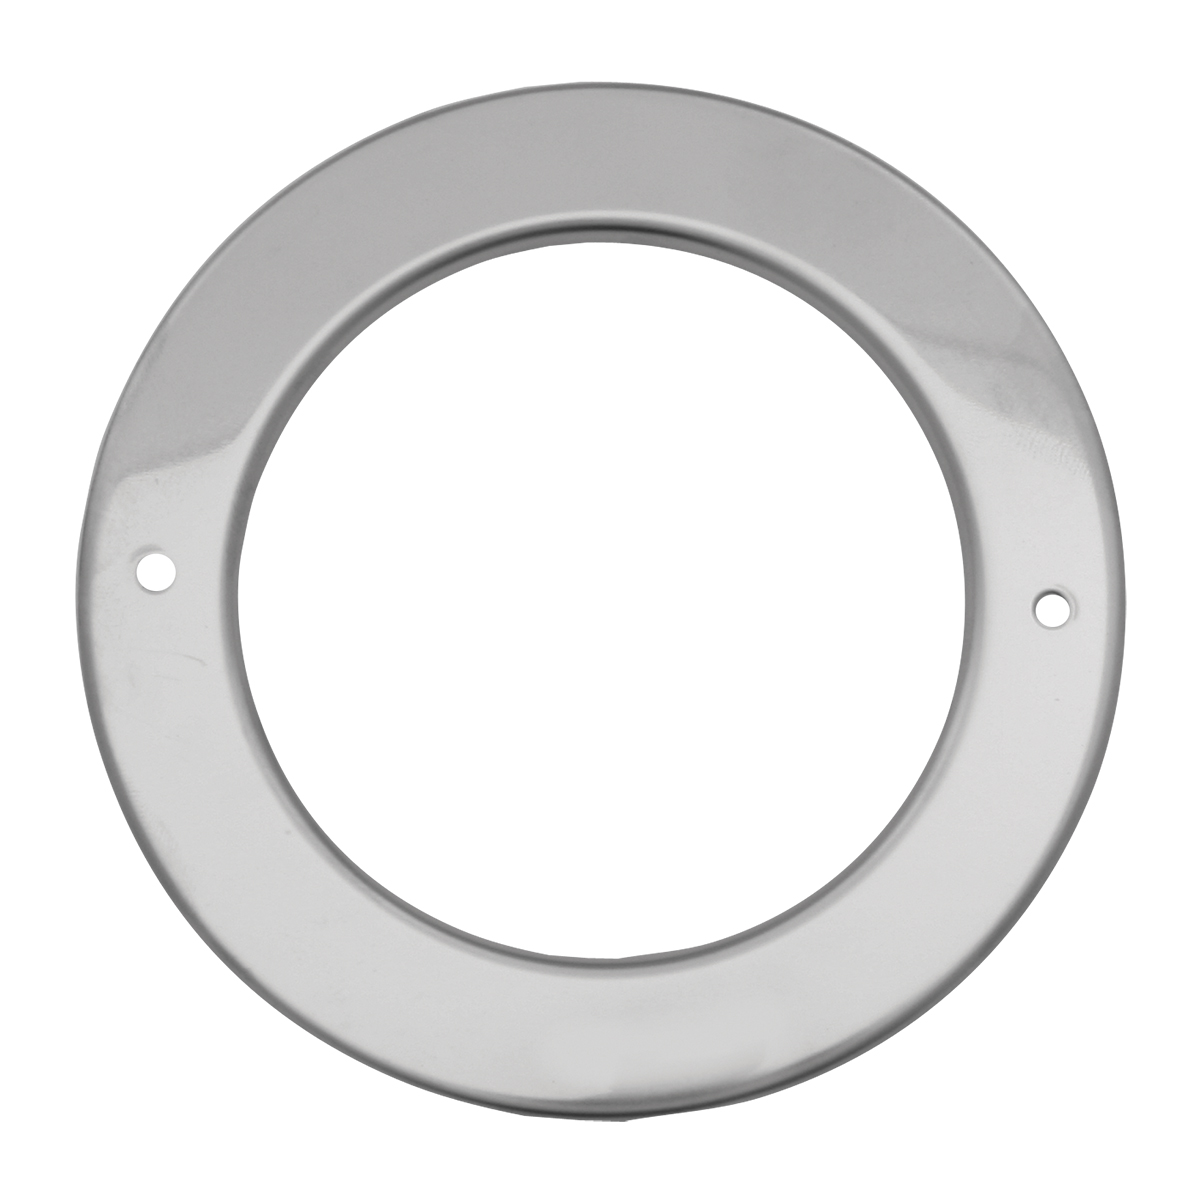 "80711 Grommet Cover w/o Visor for 2.5"" Round Light"